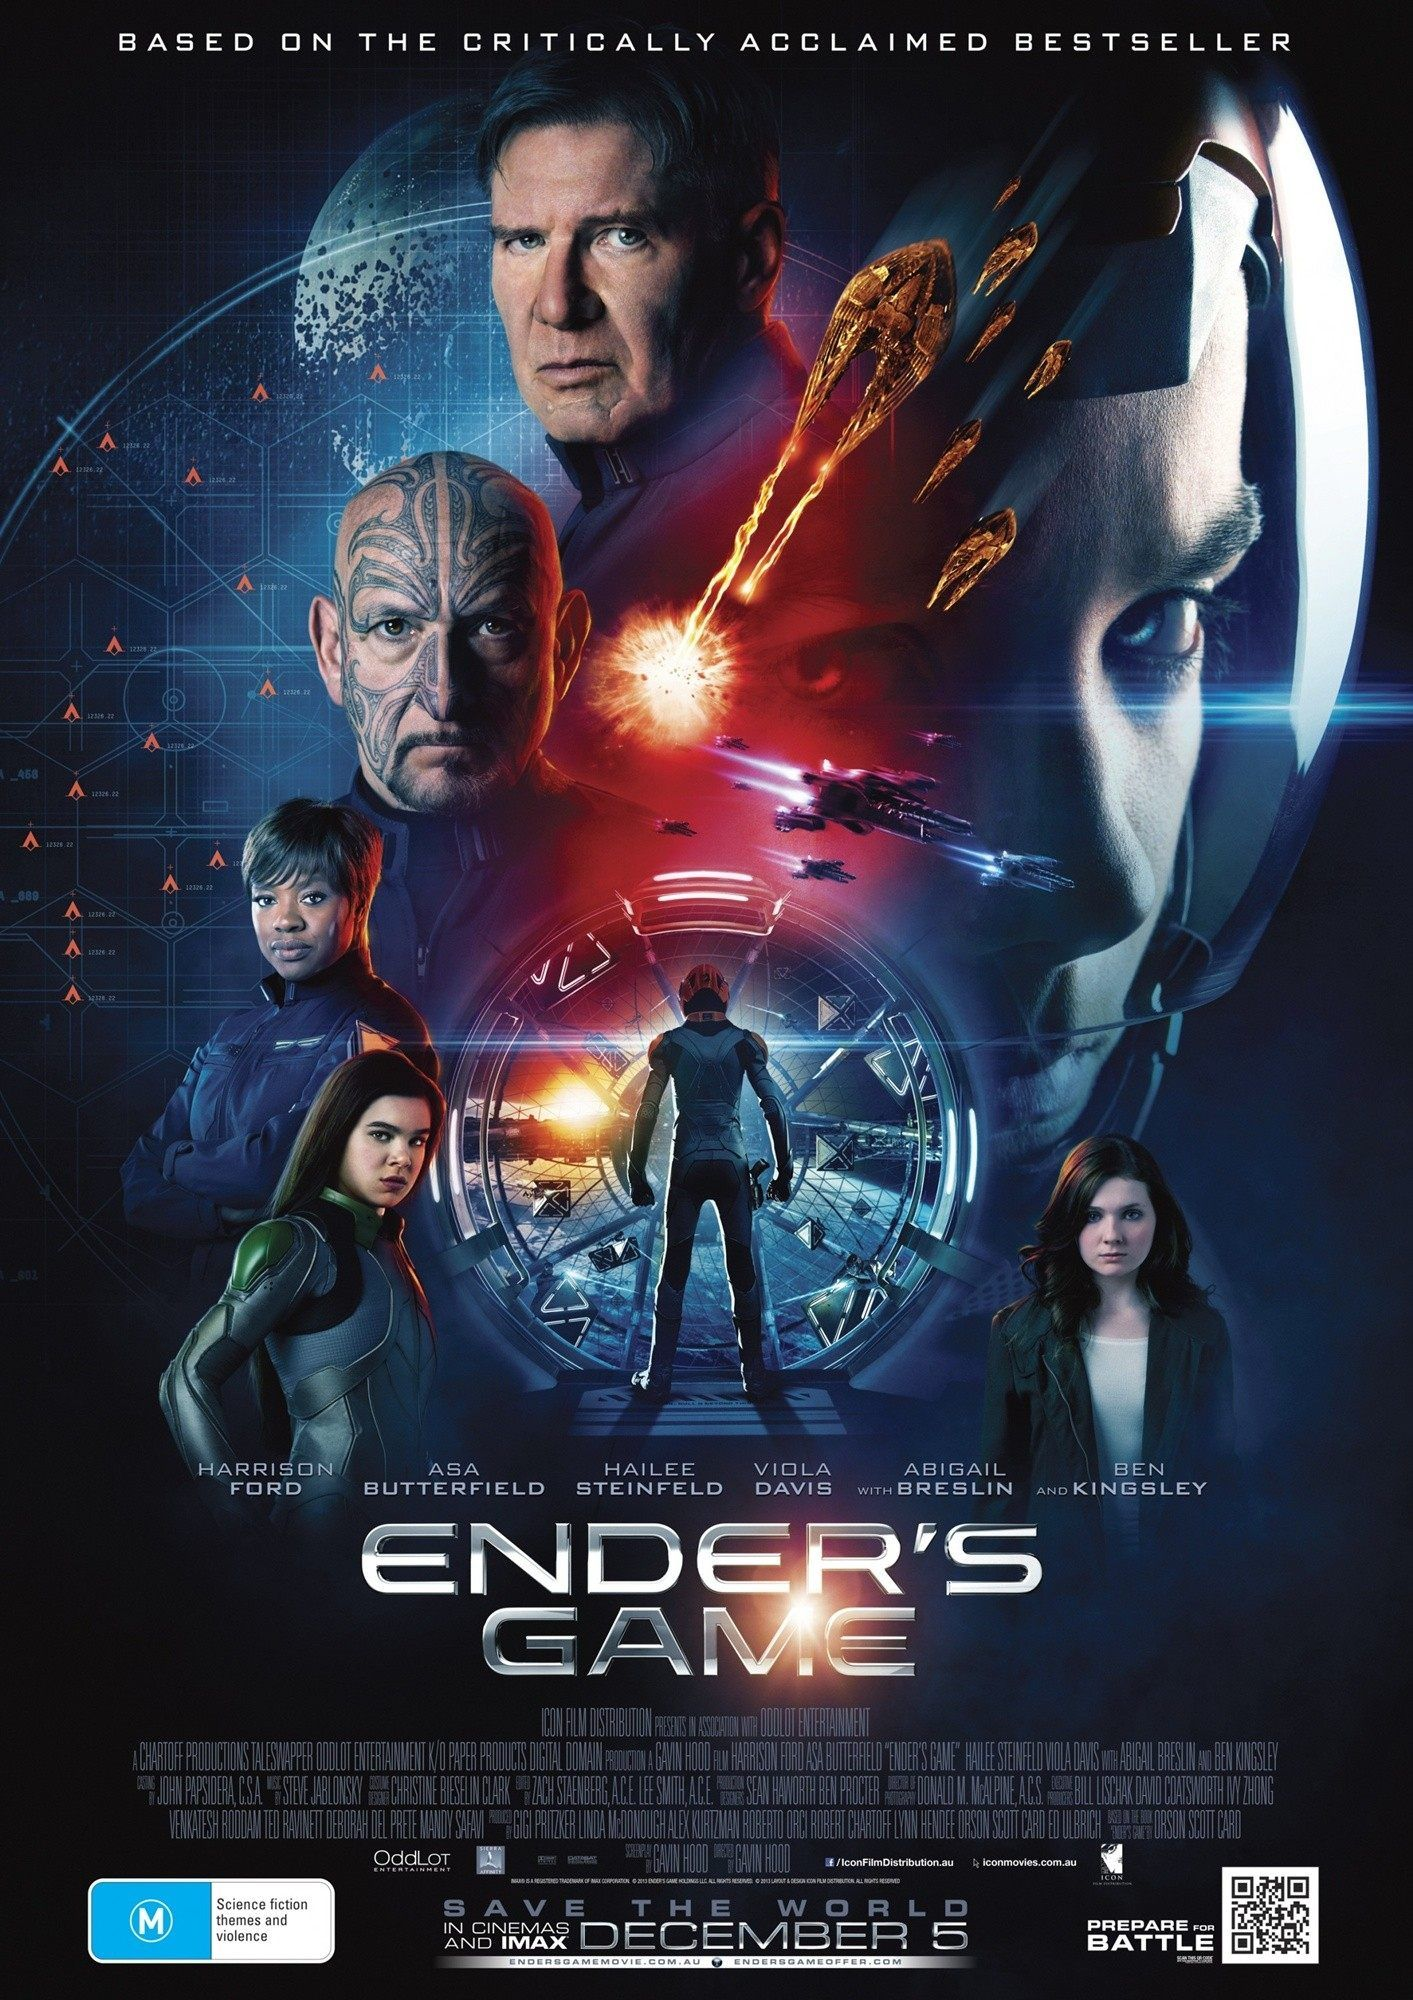 Download Ender's Game (2013) Dual Audio (Eng-Hindi) 720p BluRay | Ender's game movie, Ender's game, Movie game